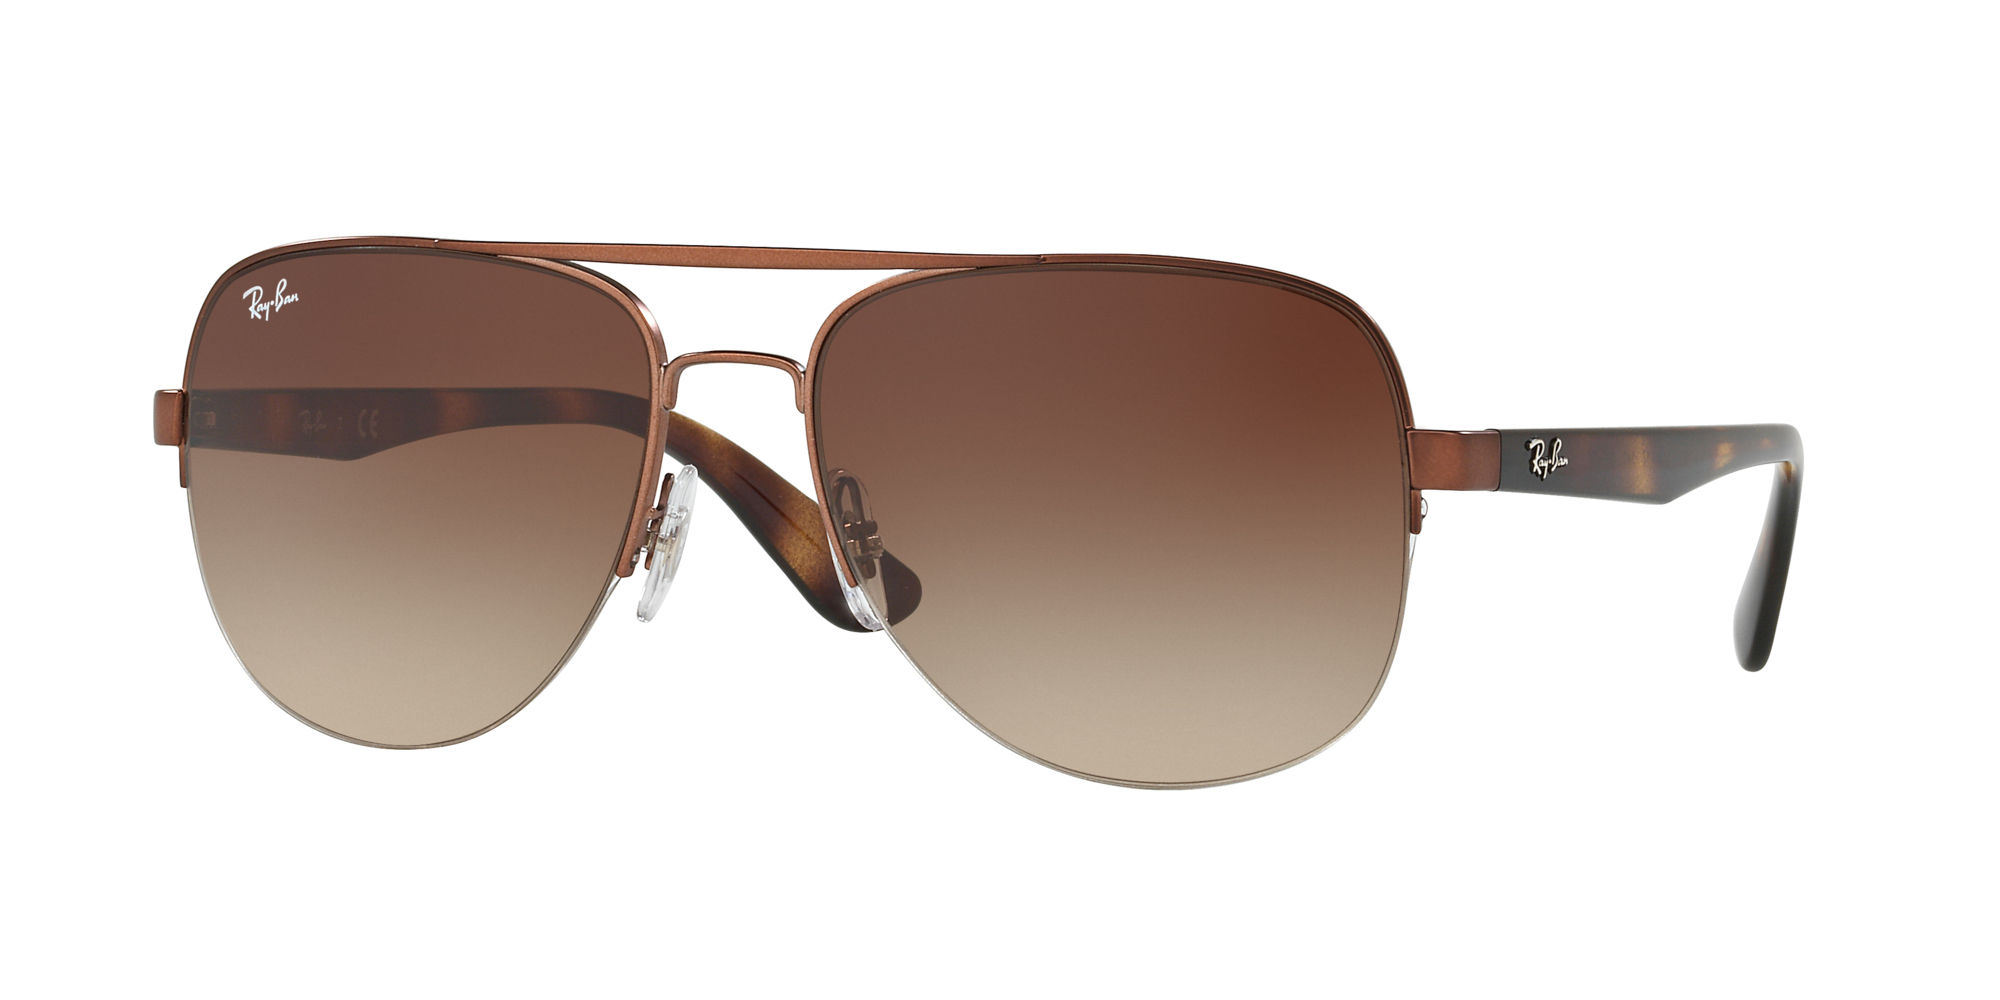 Ray-Ban Brown Gradient Sunglasses - 0RB3552I01213 58 - 17